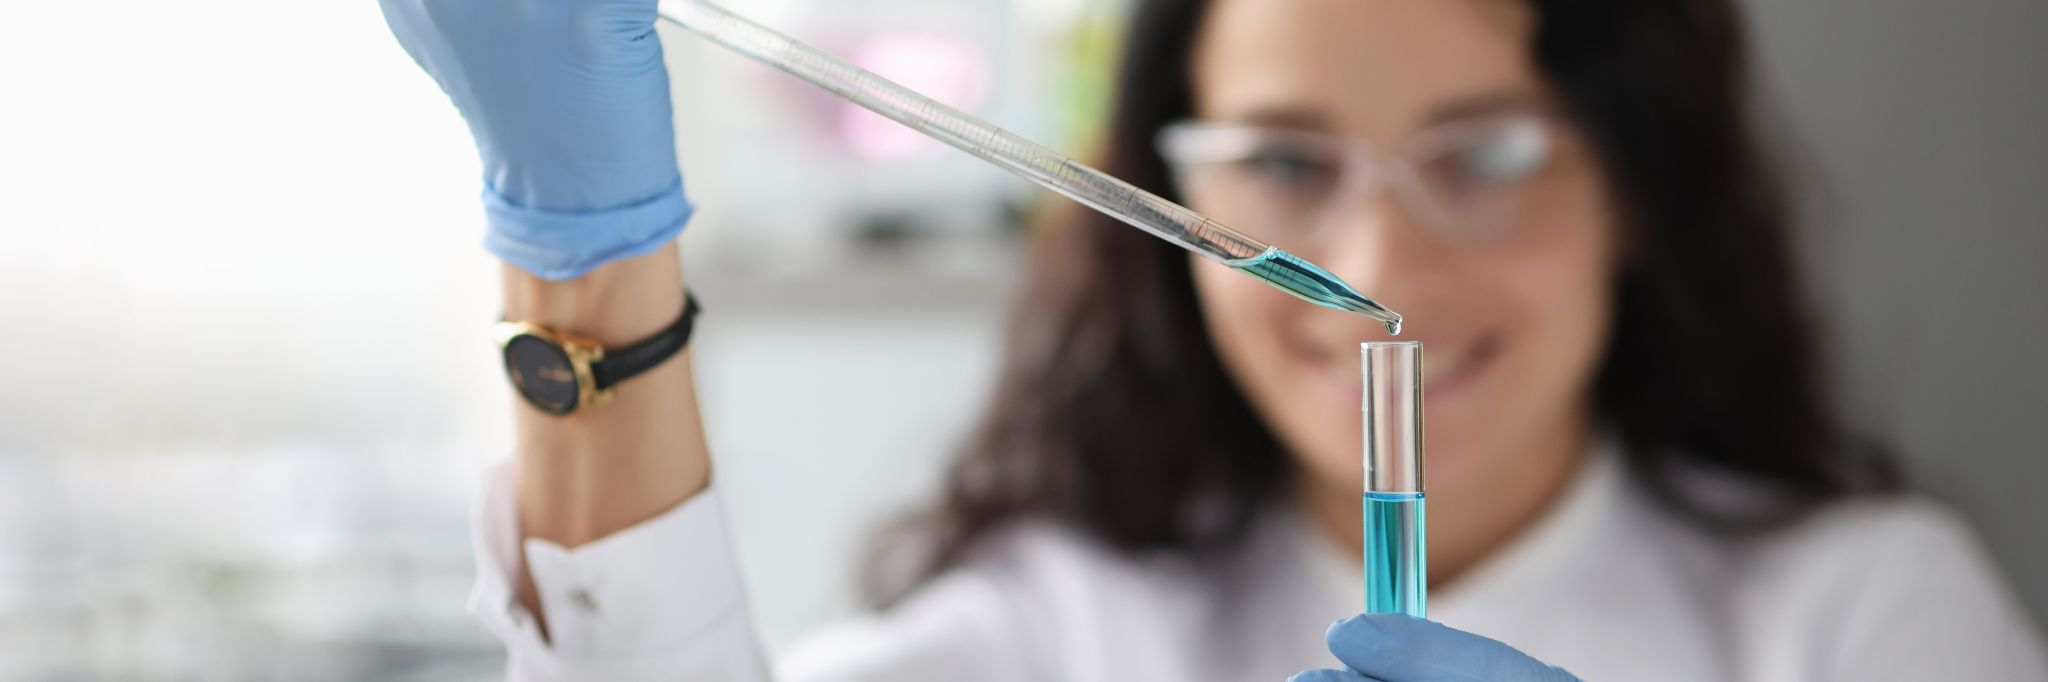 woman in a lab wearing safety gear uses pipette to measure liquid